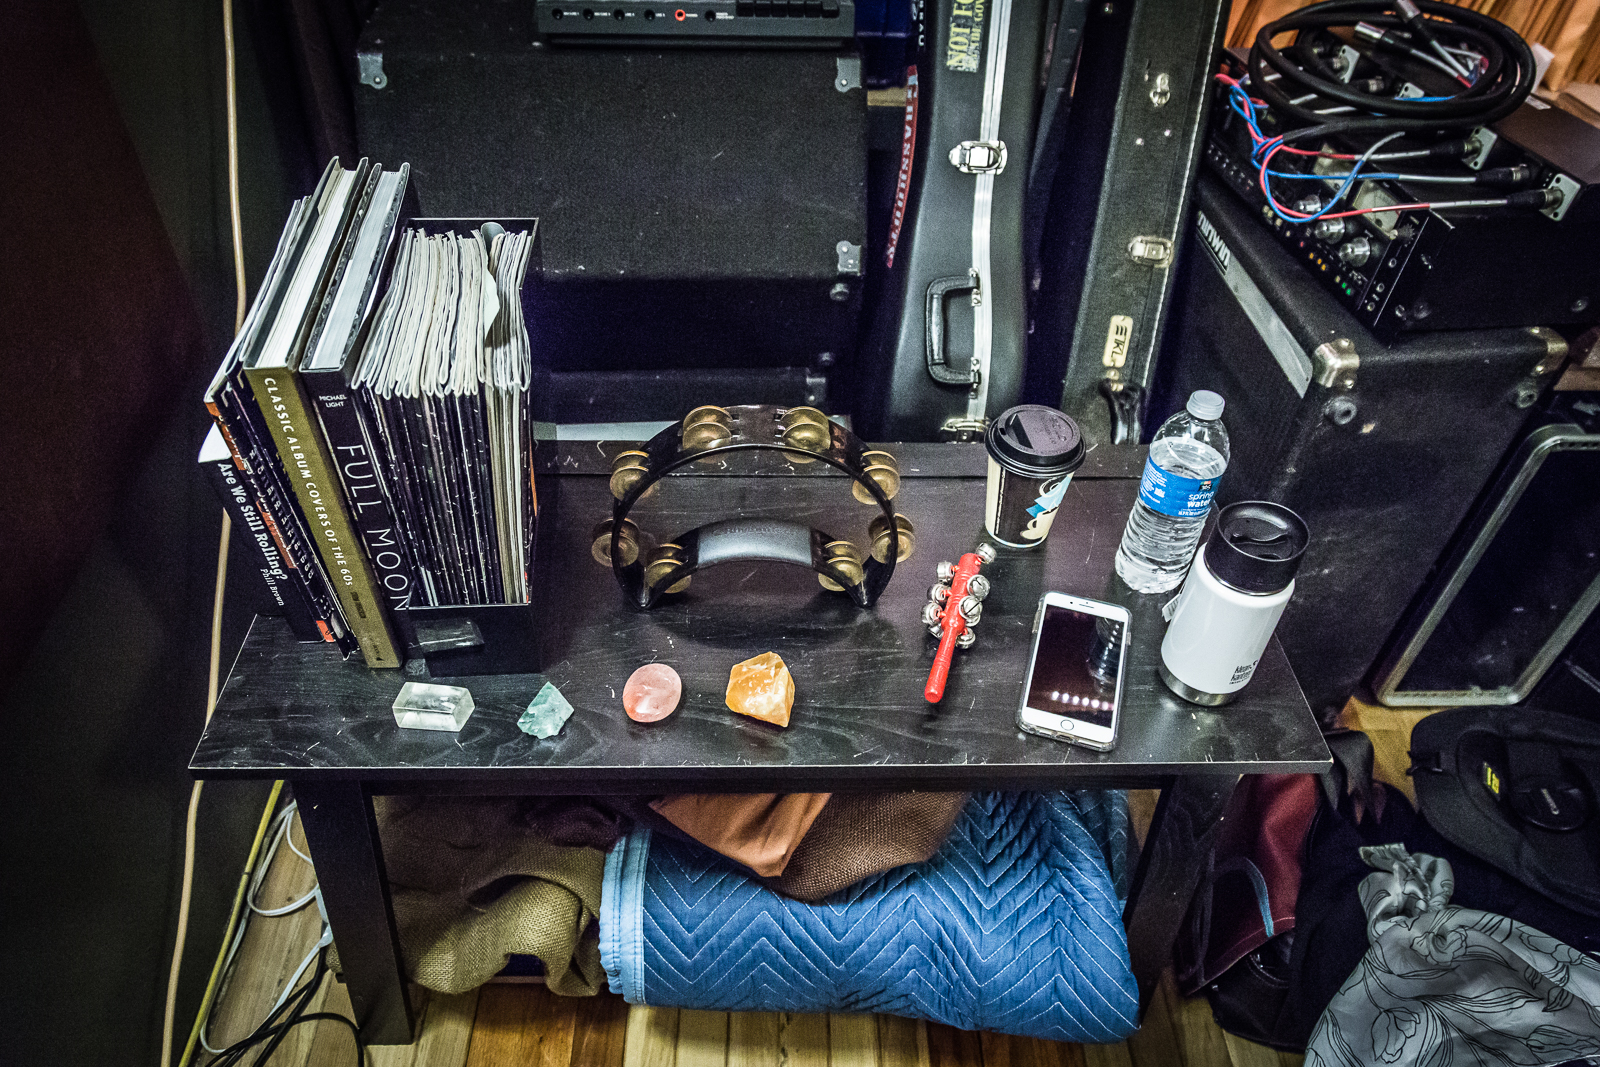 My table in the vocal booth. Brought some good rock energy with me.